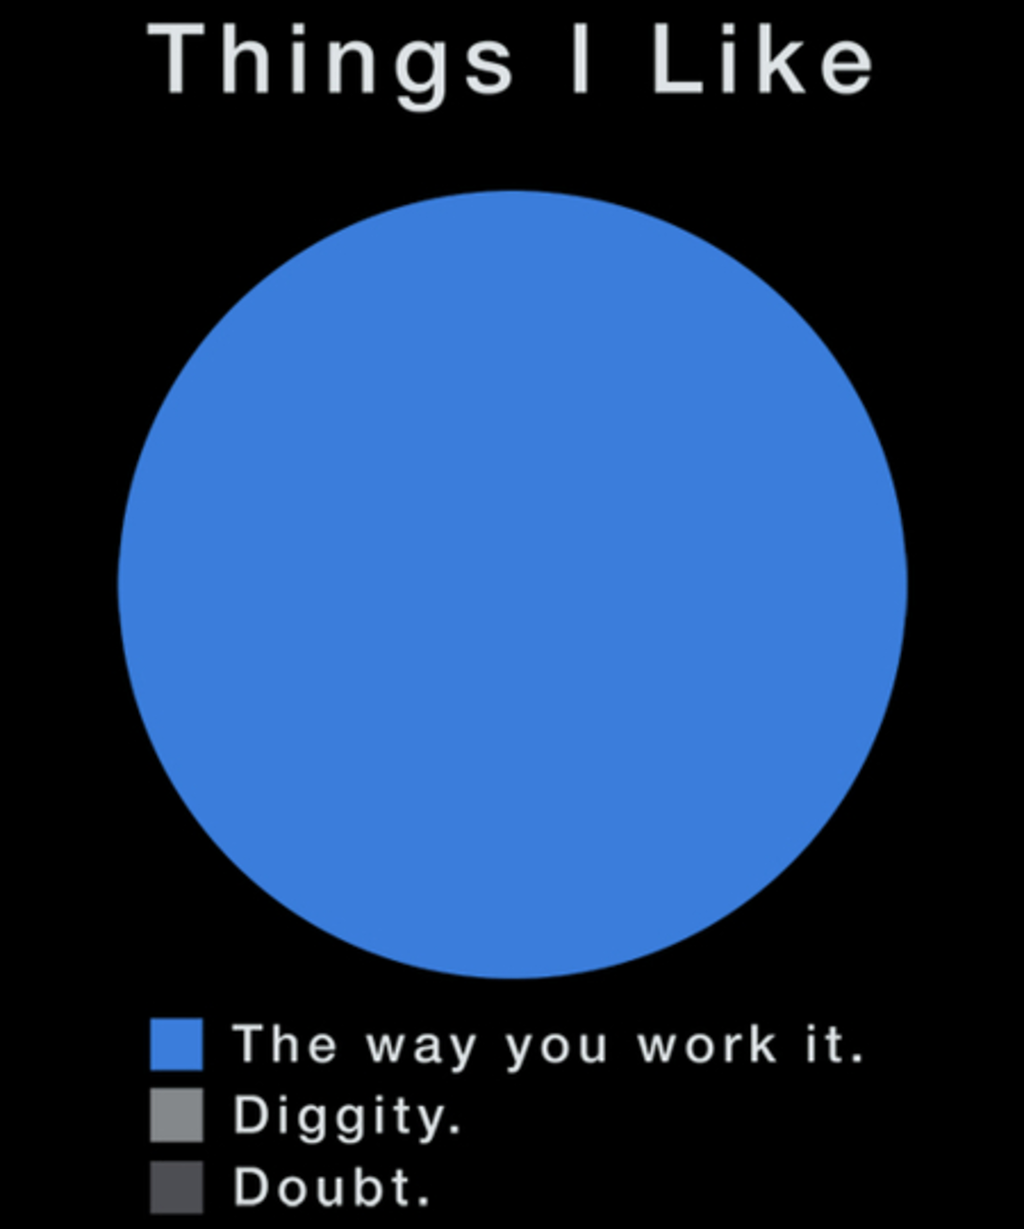 Qwertee: The Pie Charts